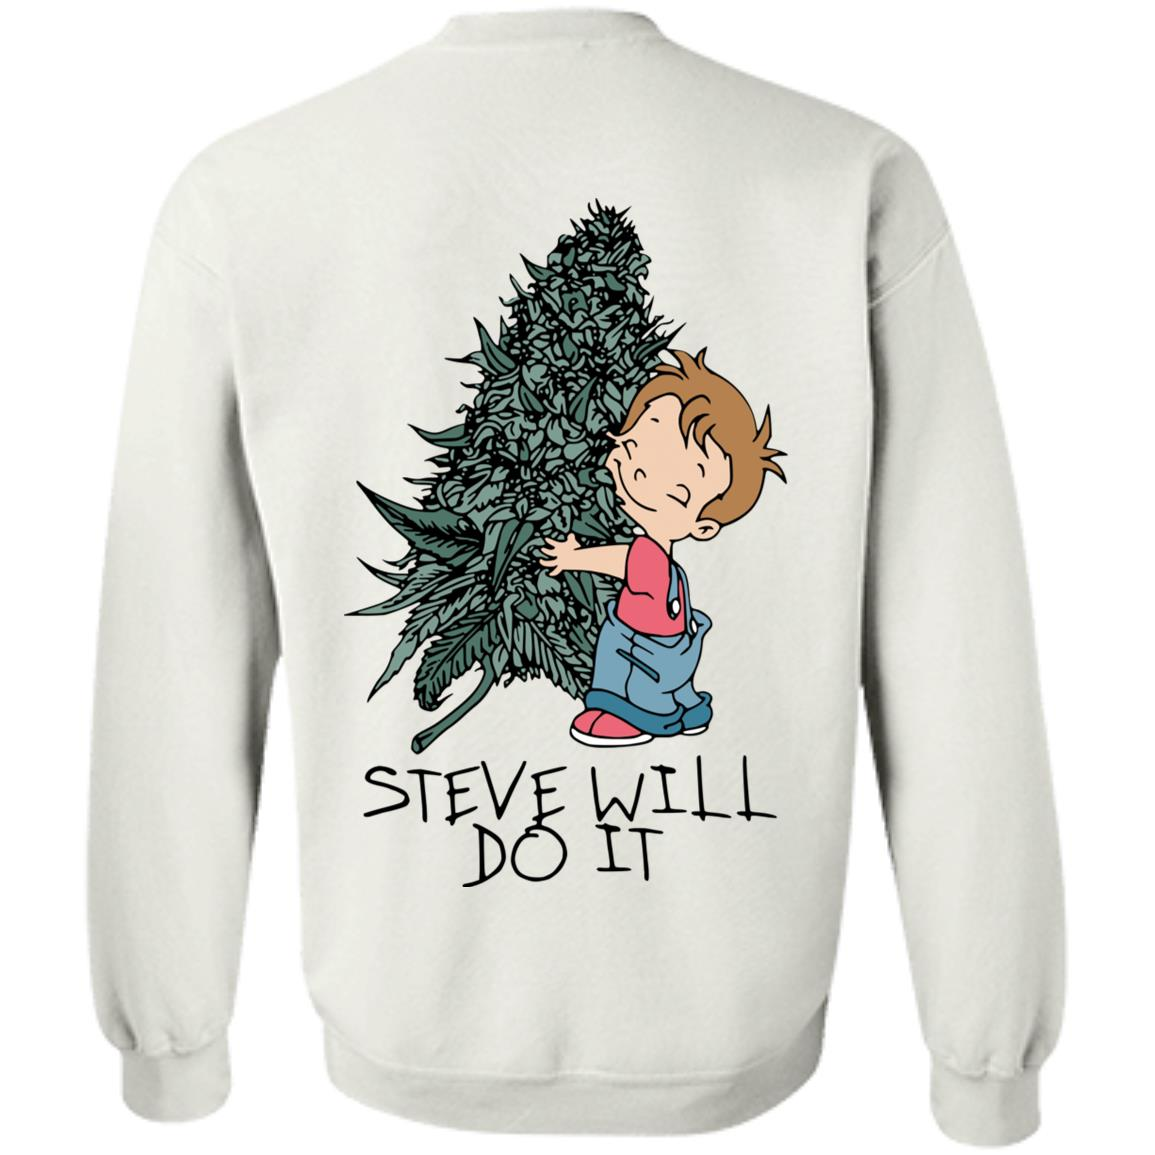 Nelk Boys Merch Stevewilldoit First Love Tee Tipatee Not only for the fact it's promoting gambling to kids, but it also shows steve as someone who actually has an issue with gambling. nelk boys merch stevewilldoit first love tee